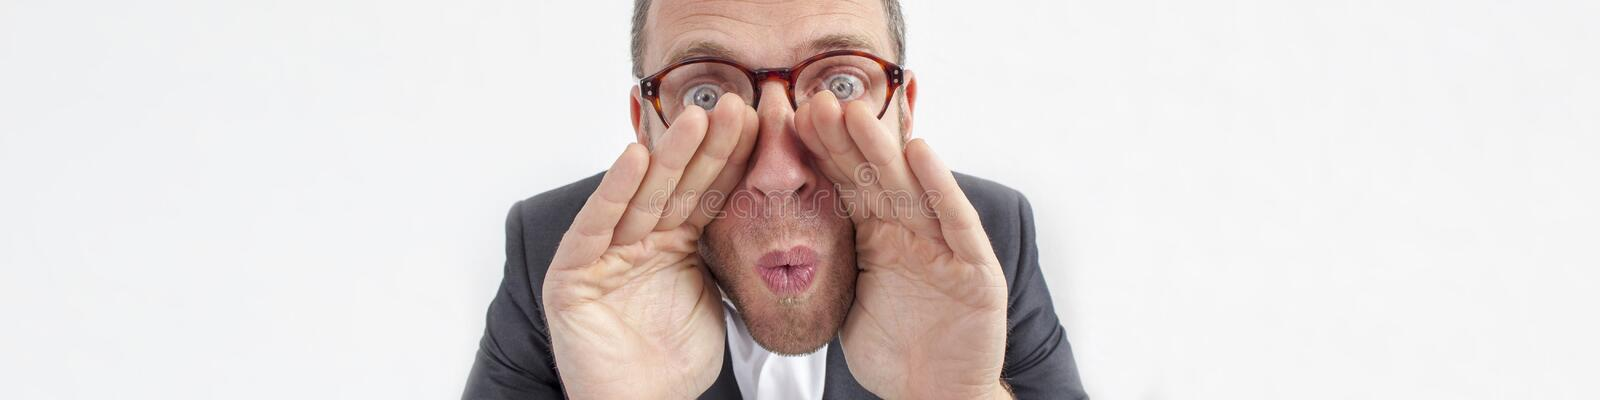 Manager whispering for management strategies with hands like loud-hailer. Expressive corporate man concept - excited middle age businessman whispering with hands stock images